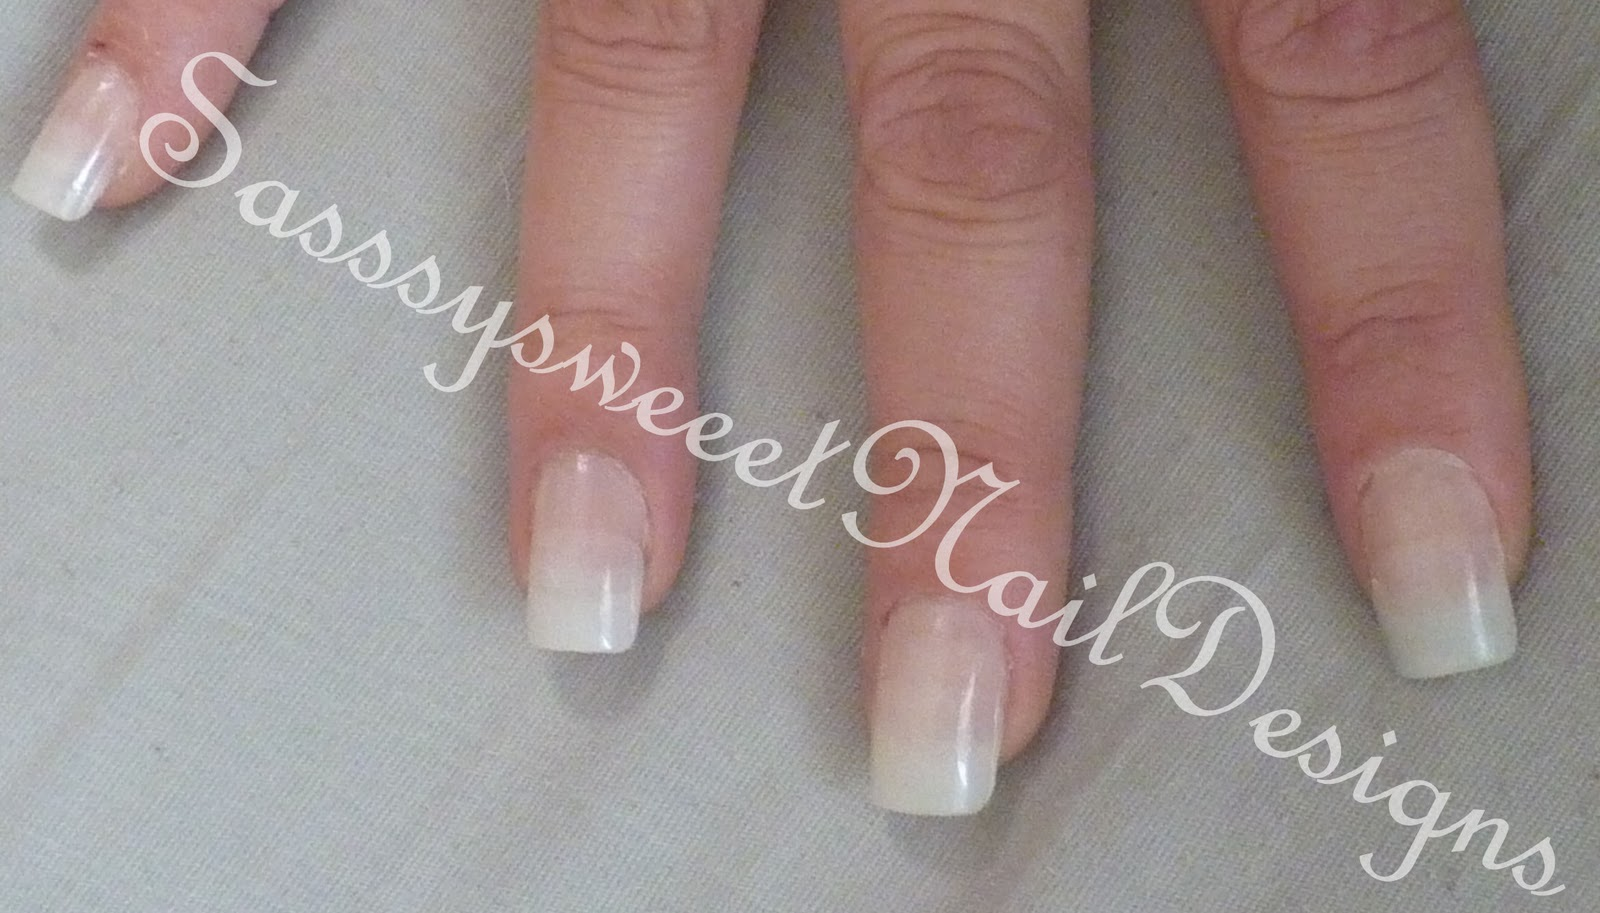 Sasssysweeet Nail Designs: Acrylic Nails at Home